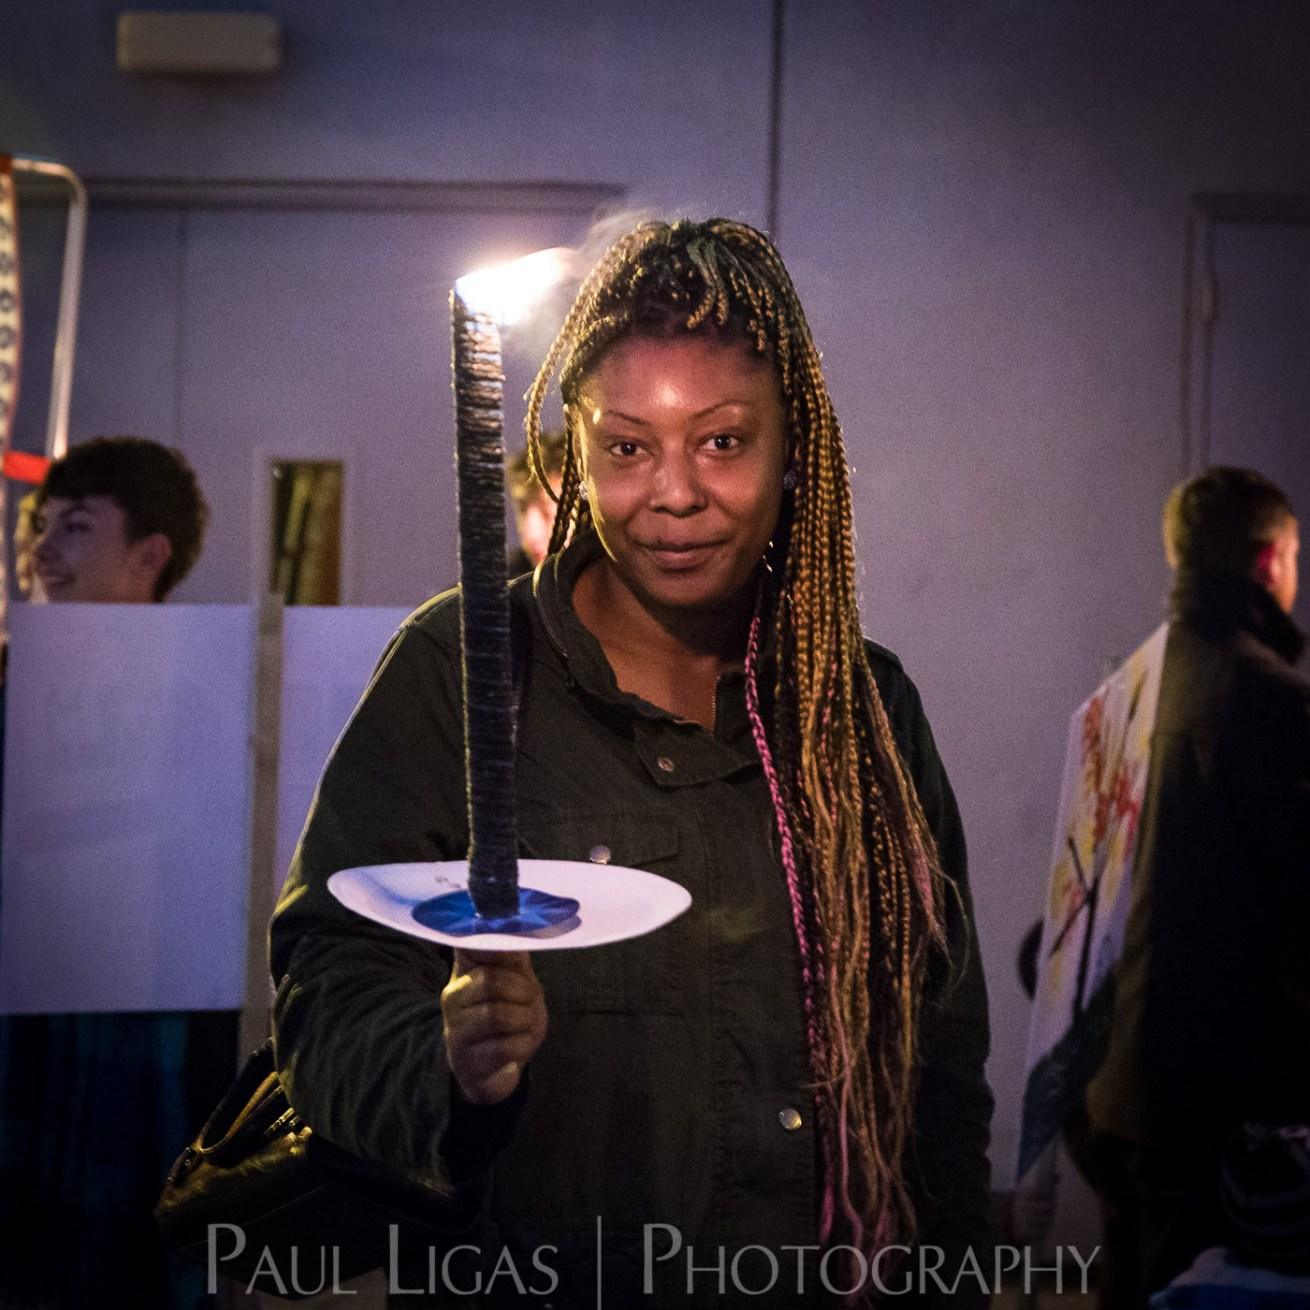 Longbridge Light Festival, Birmingham event photographer herefordshire photography people 3941